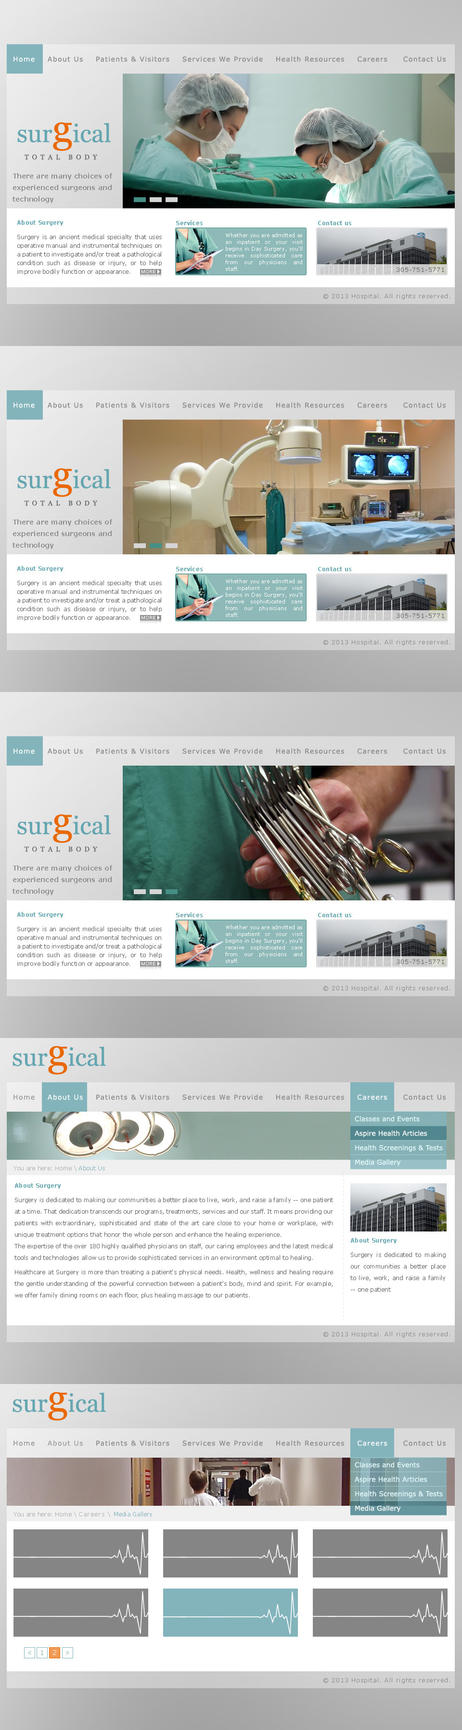 surgical by isfahangraphic